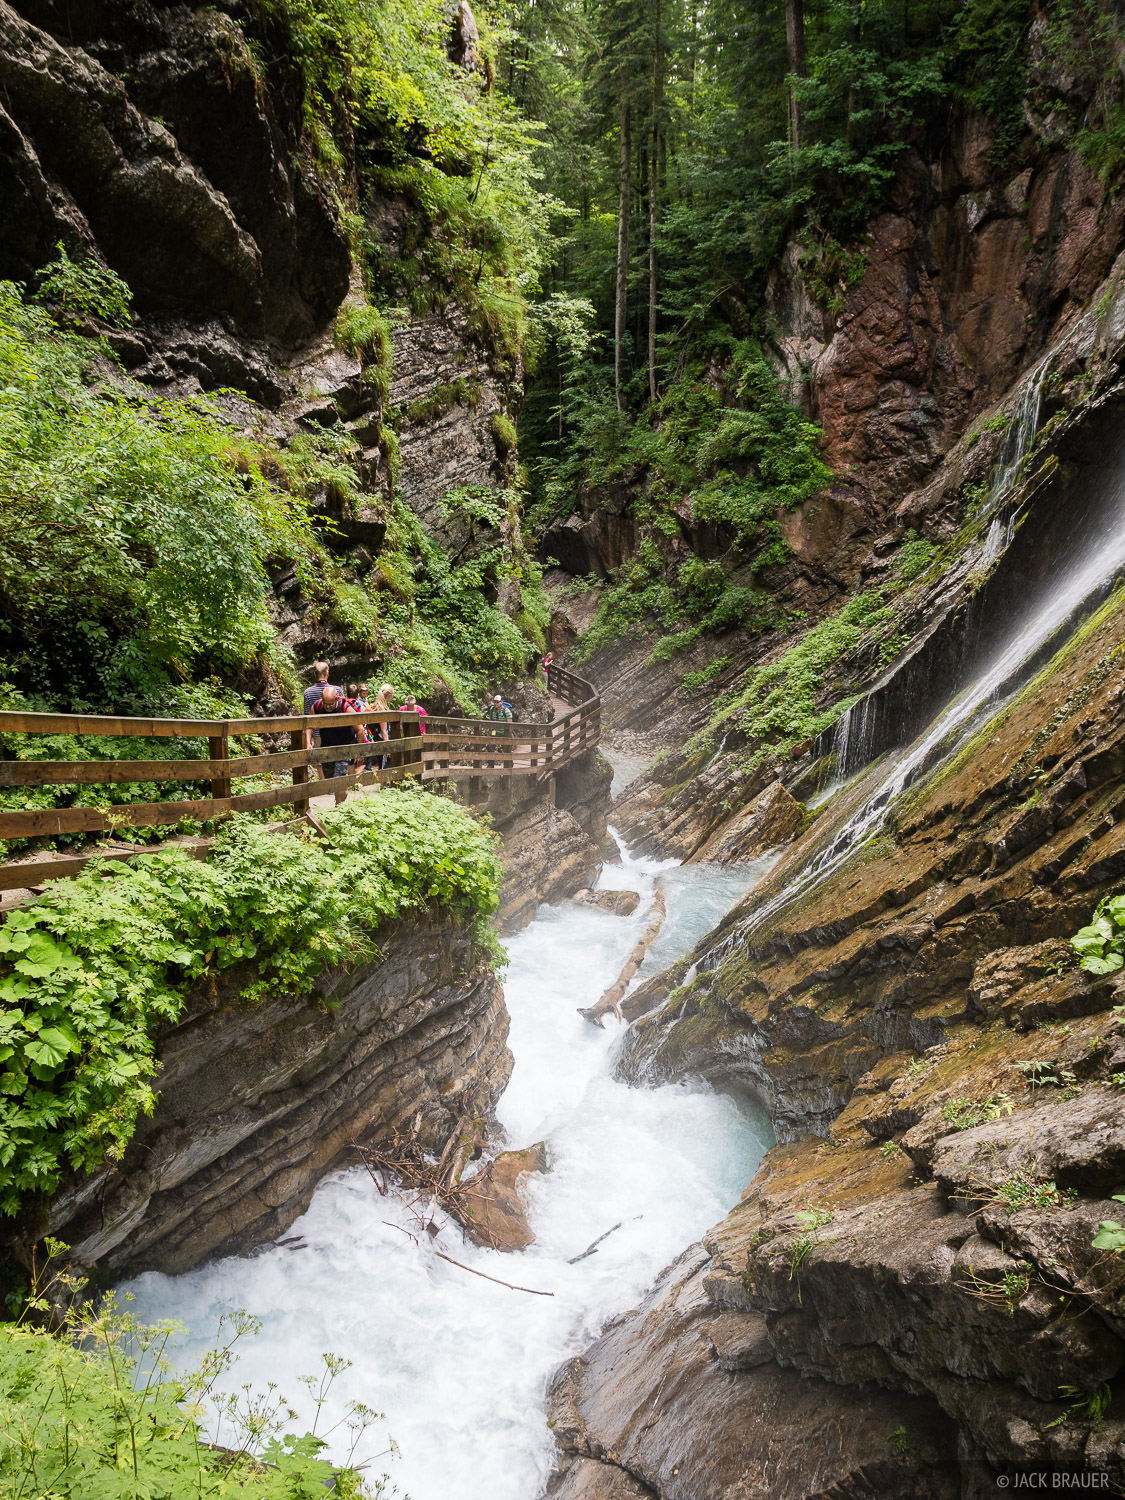 Berchtesgaden, Europe, Germany, Wimbachklamm, photo